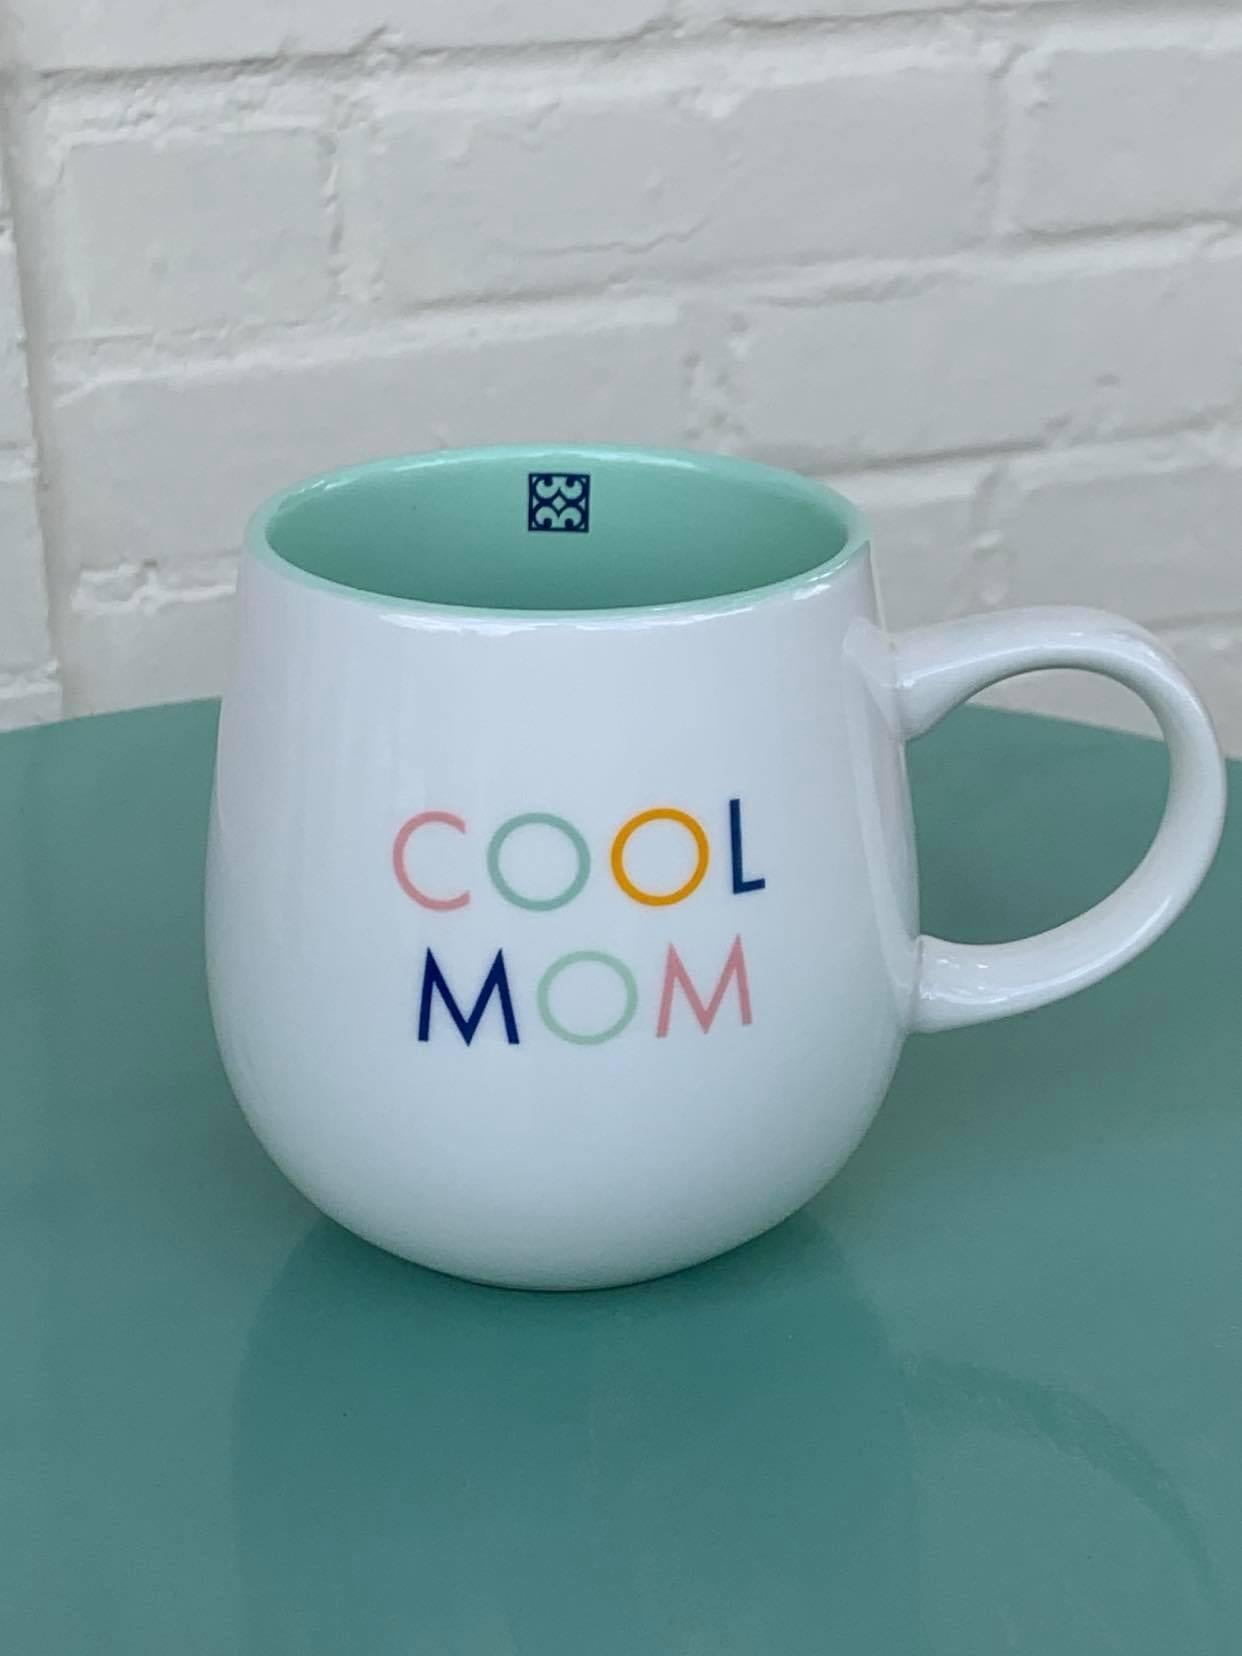 Cool Mom Ceramic Mug